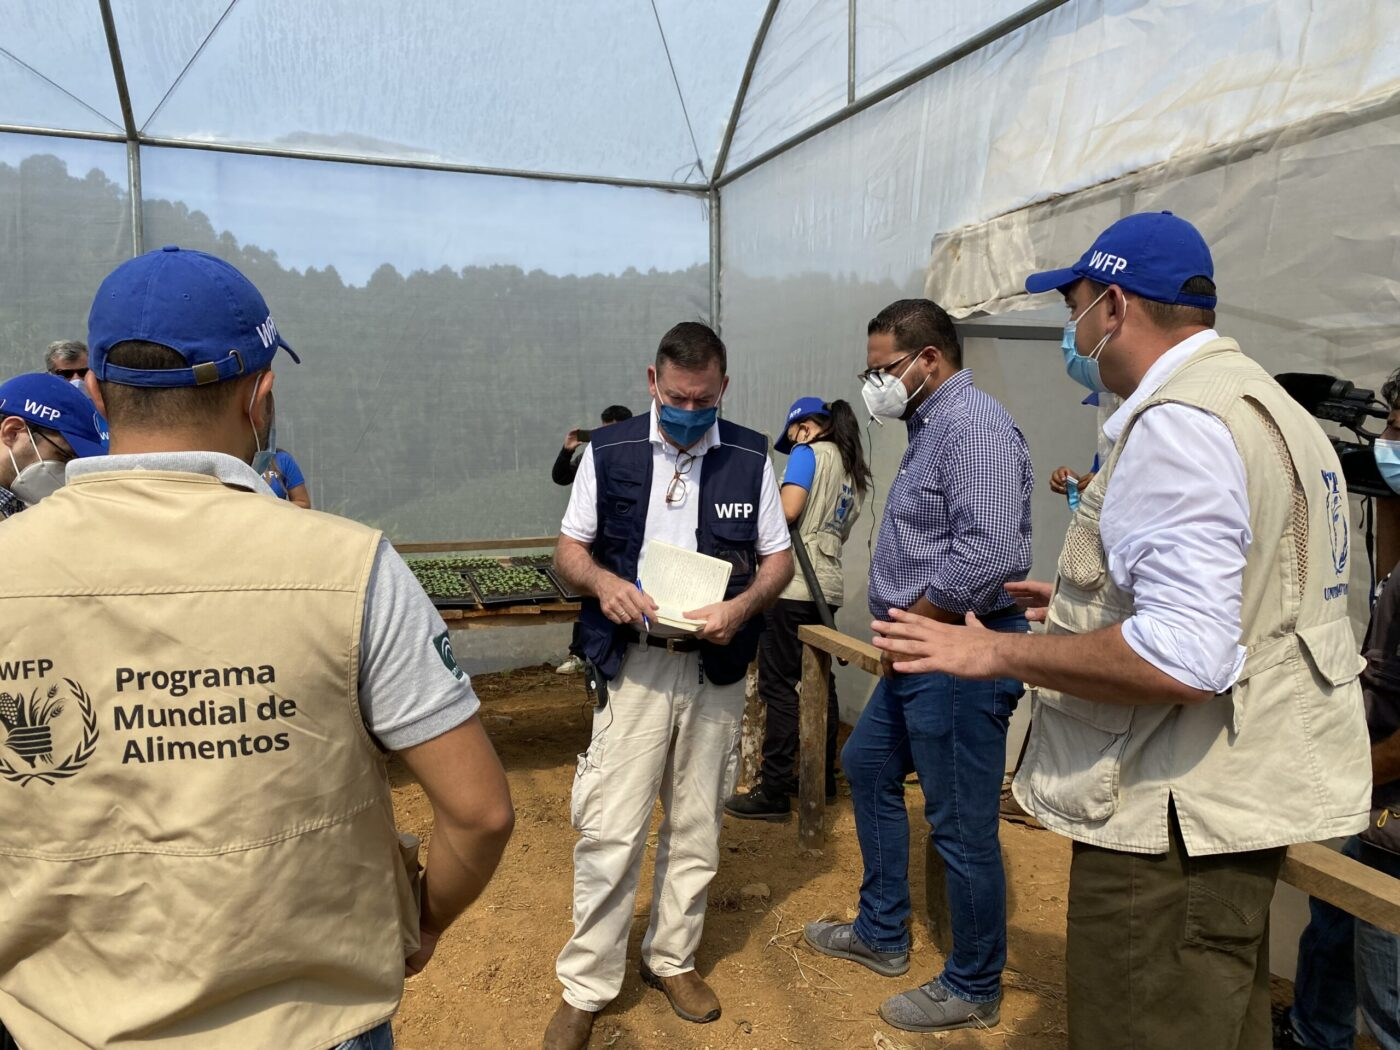 WFP USA president Barron Segar talks with other WFP staff in Central America